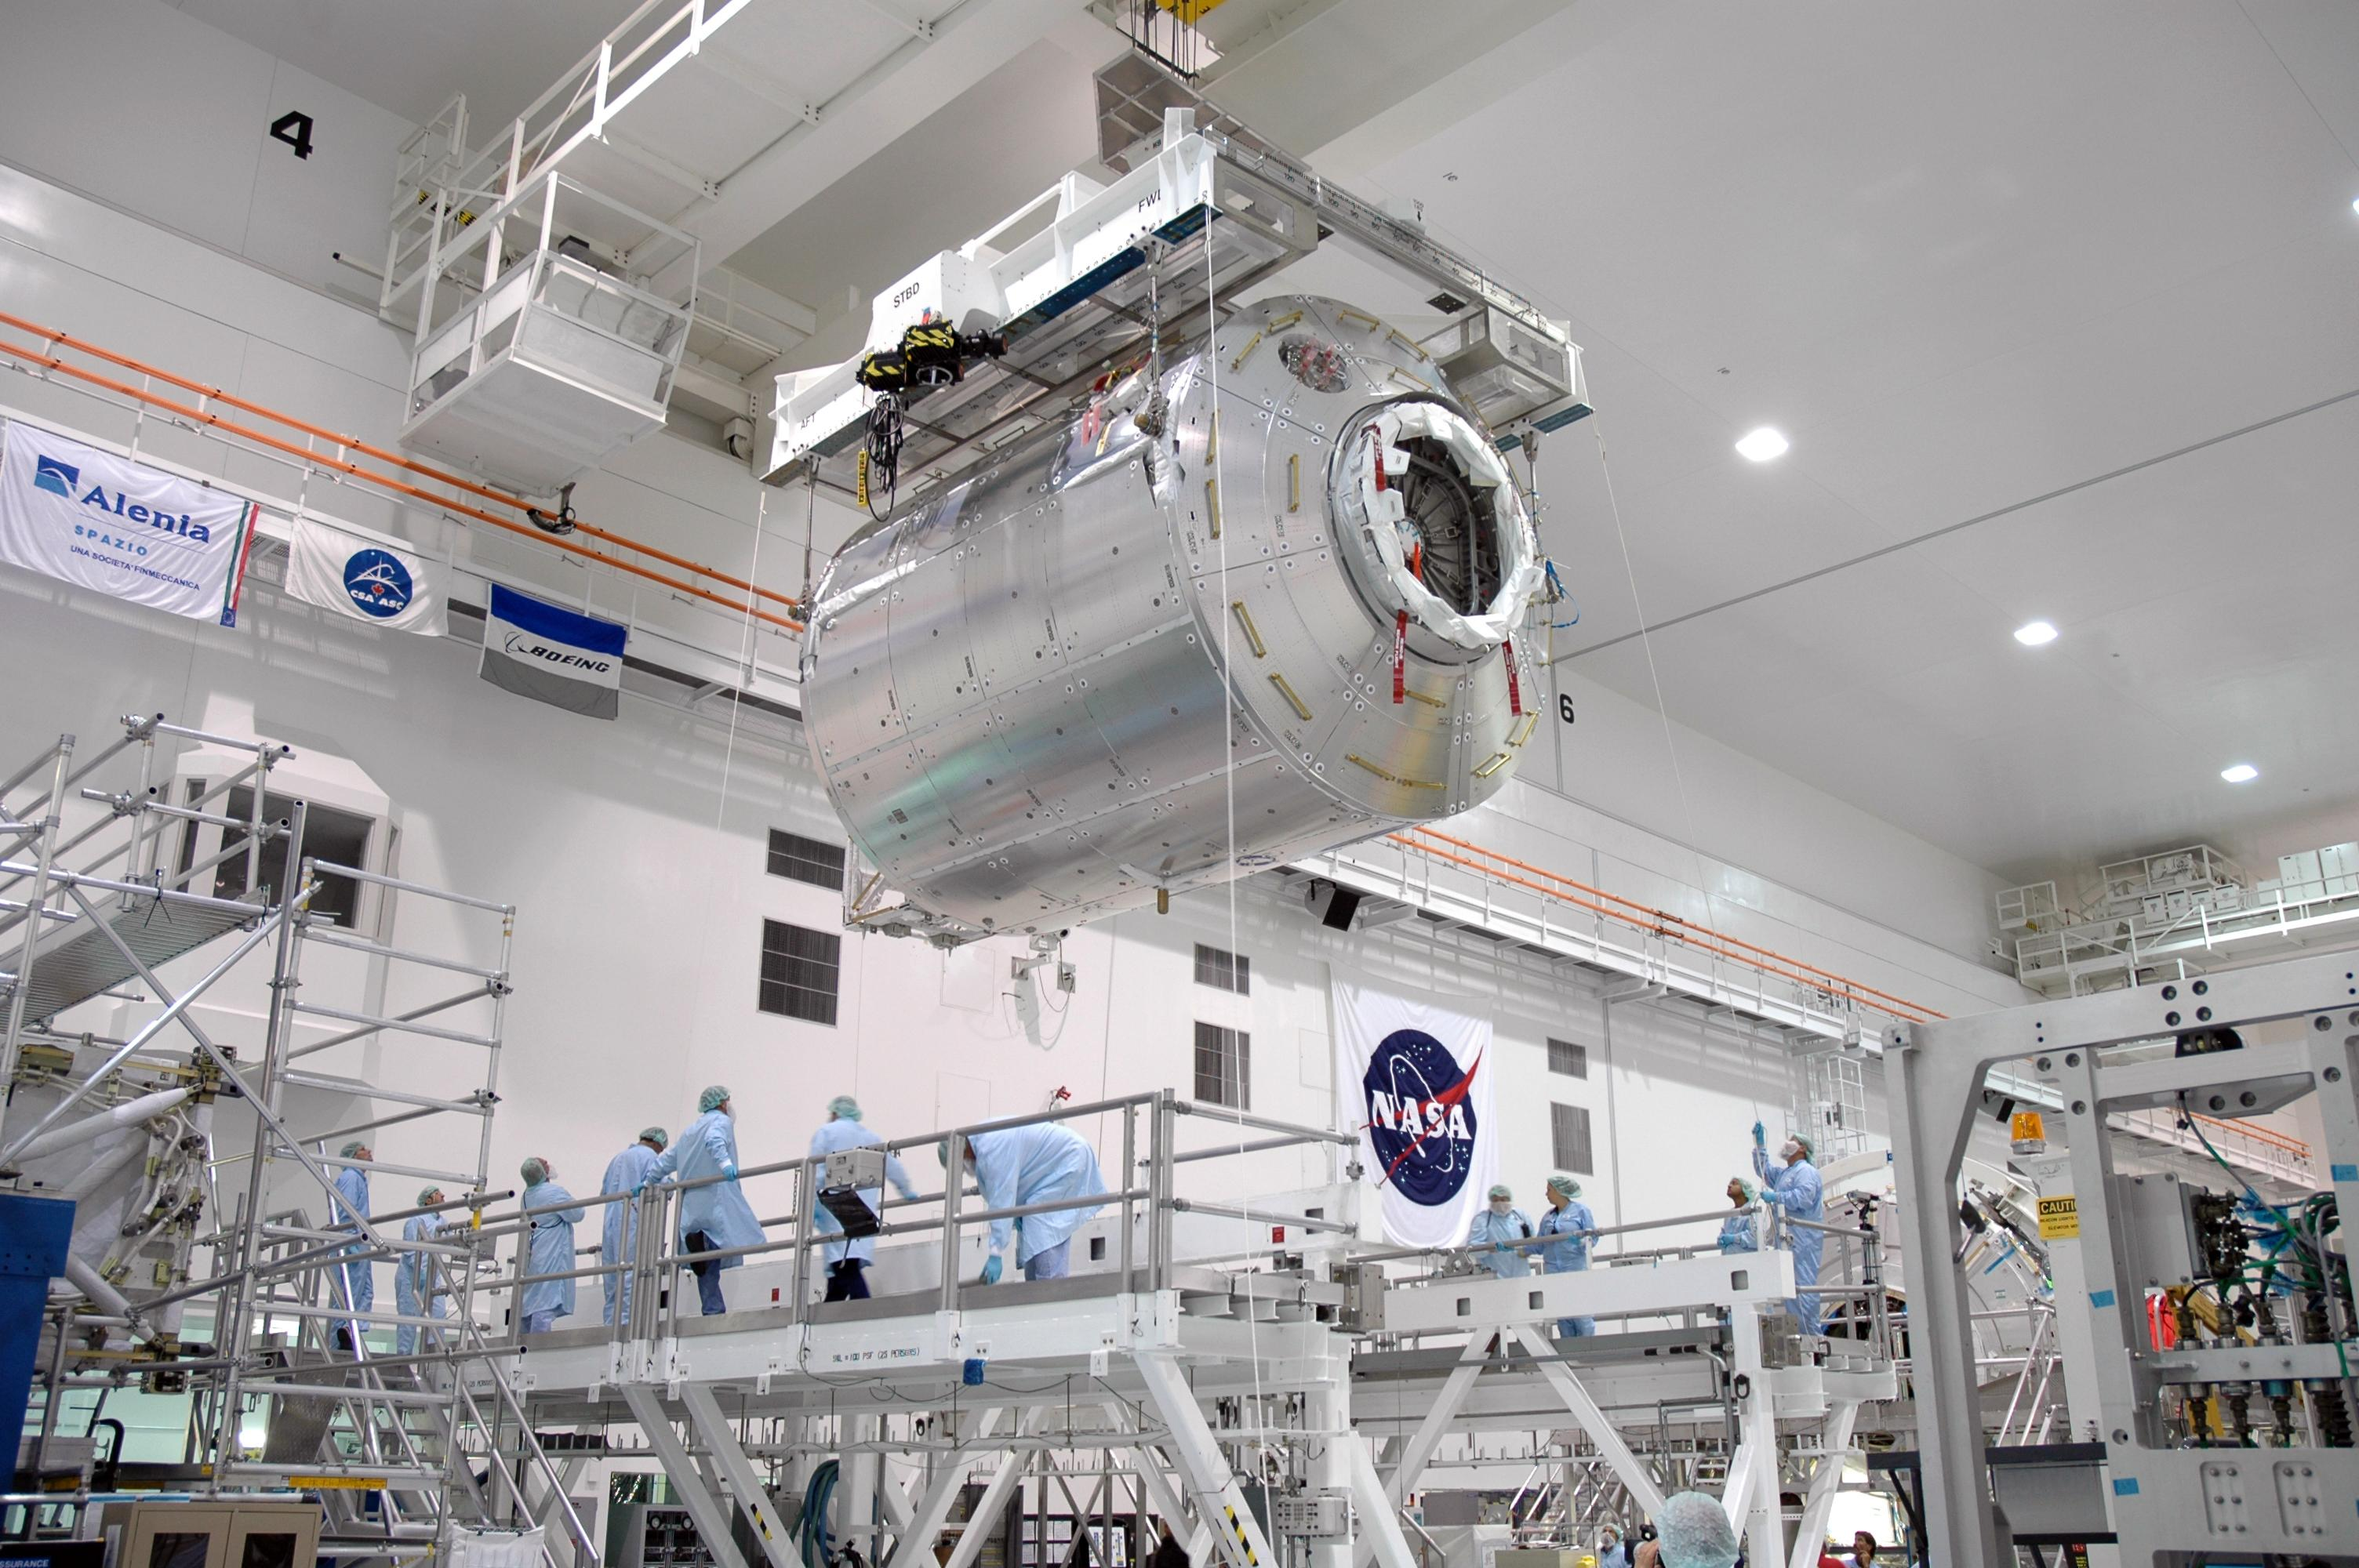 nasa space lab - photo #7